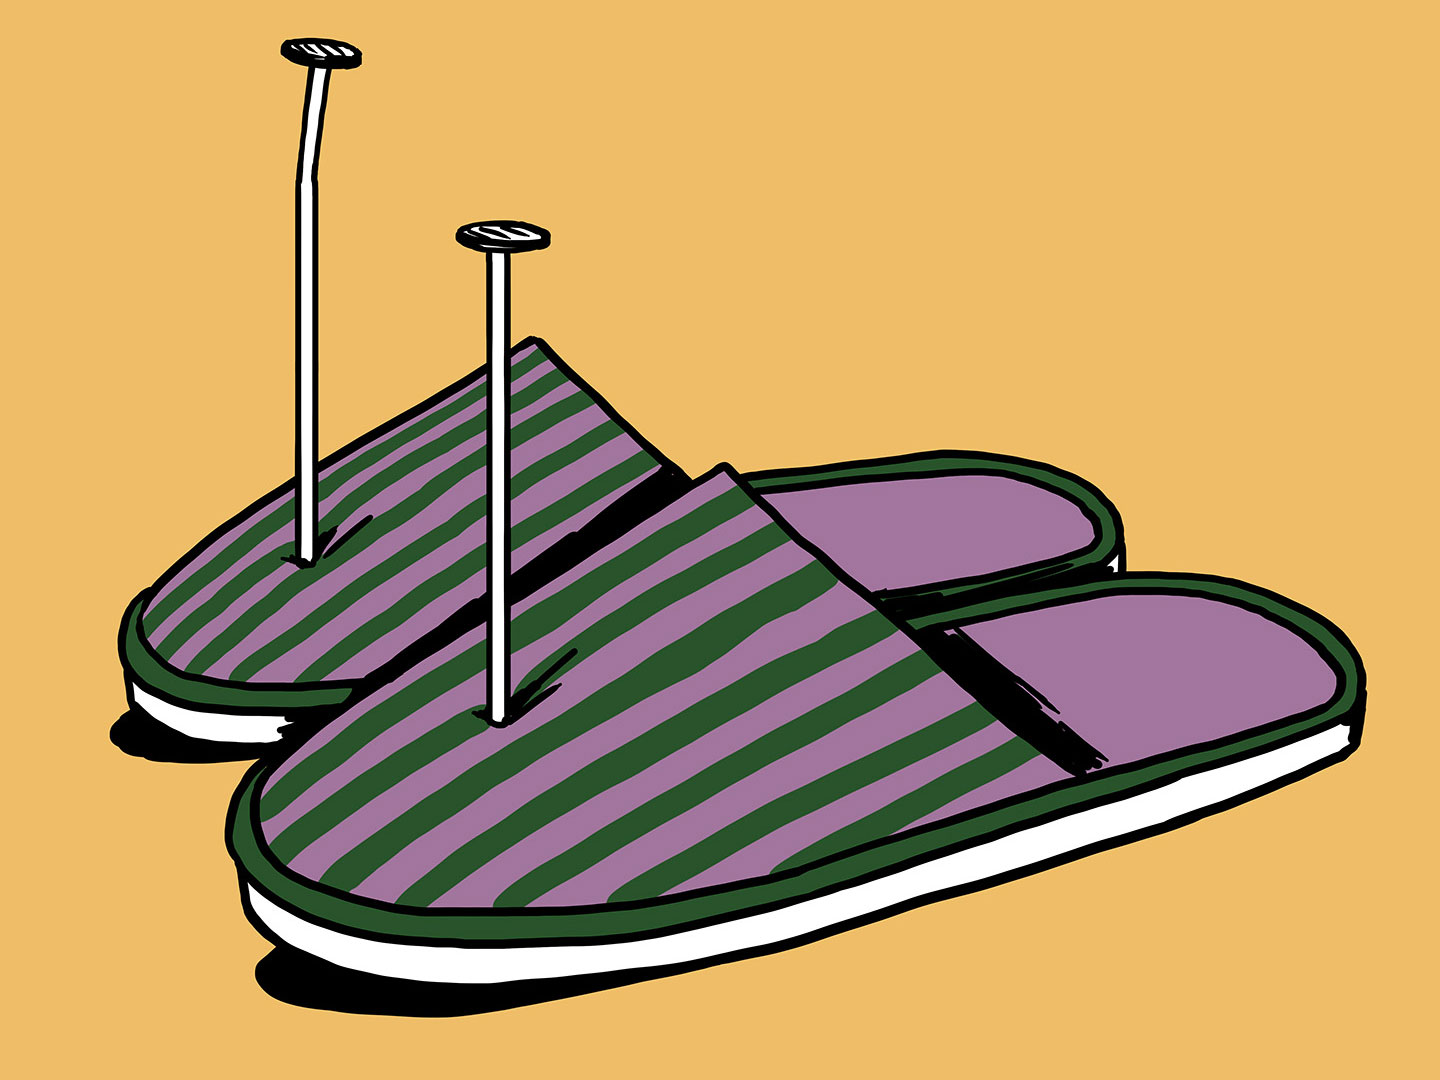 A colourful illustration of a pair of slippers with metal nails through the toes.